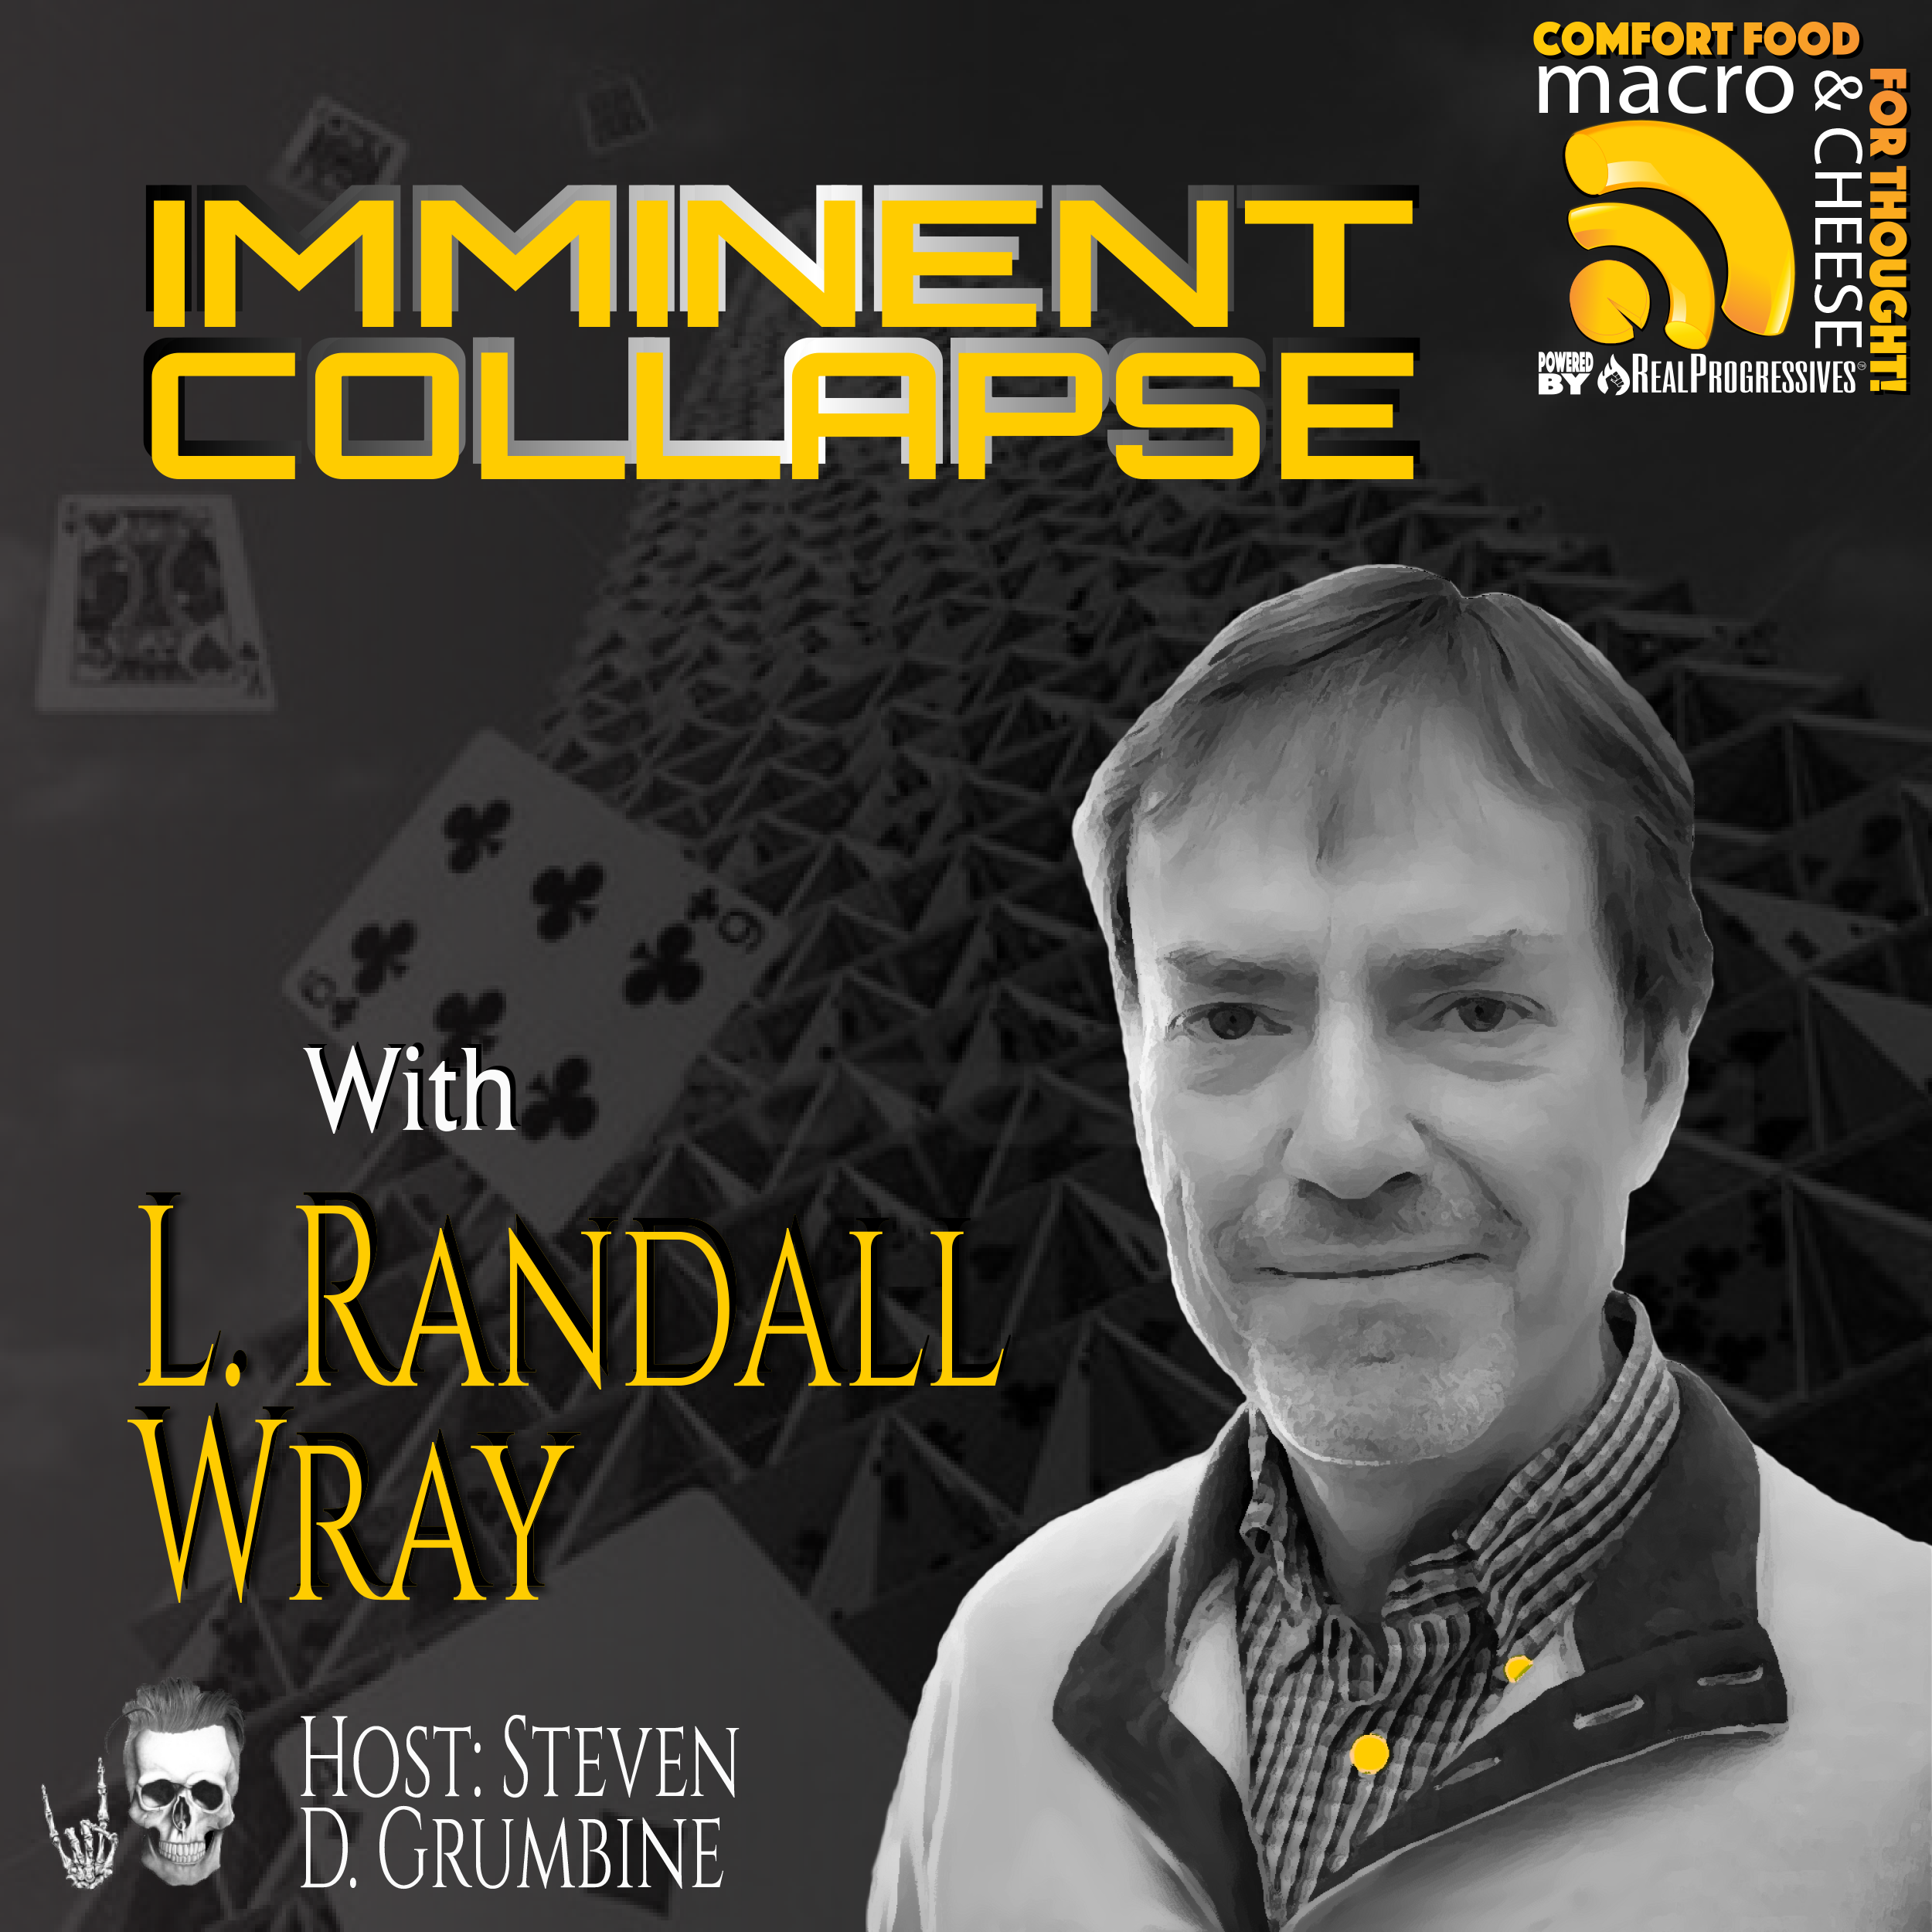 Episode 98 - Imminent Collapse with L. Randall Wray